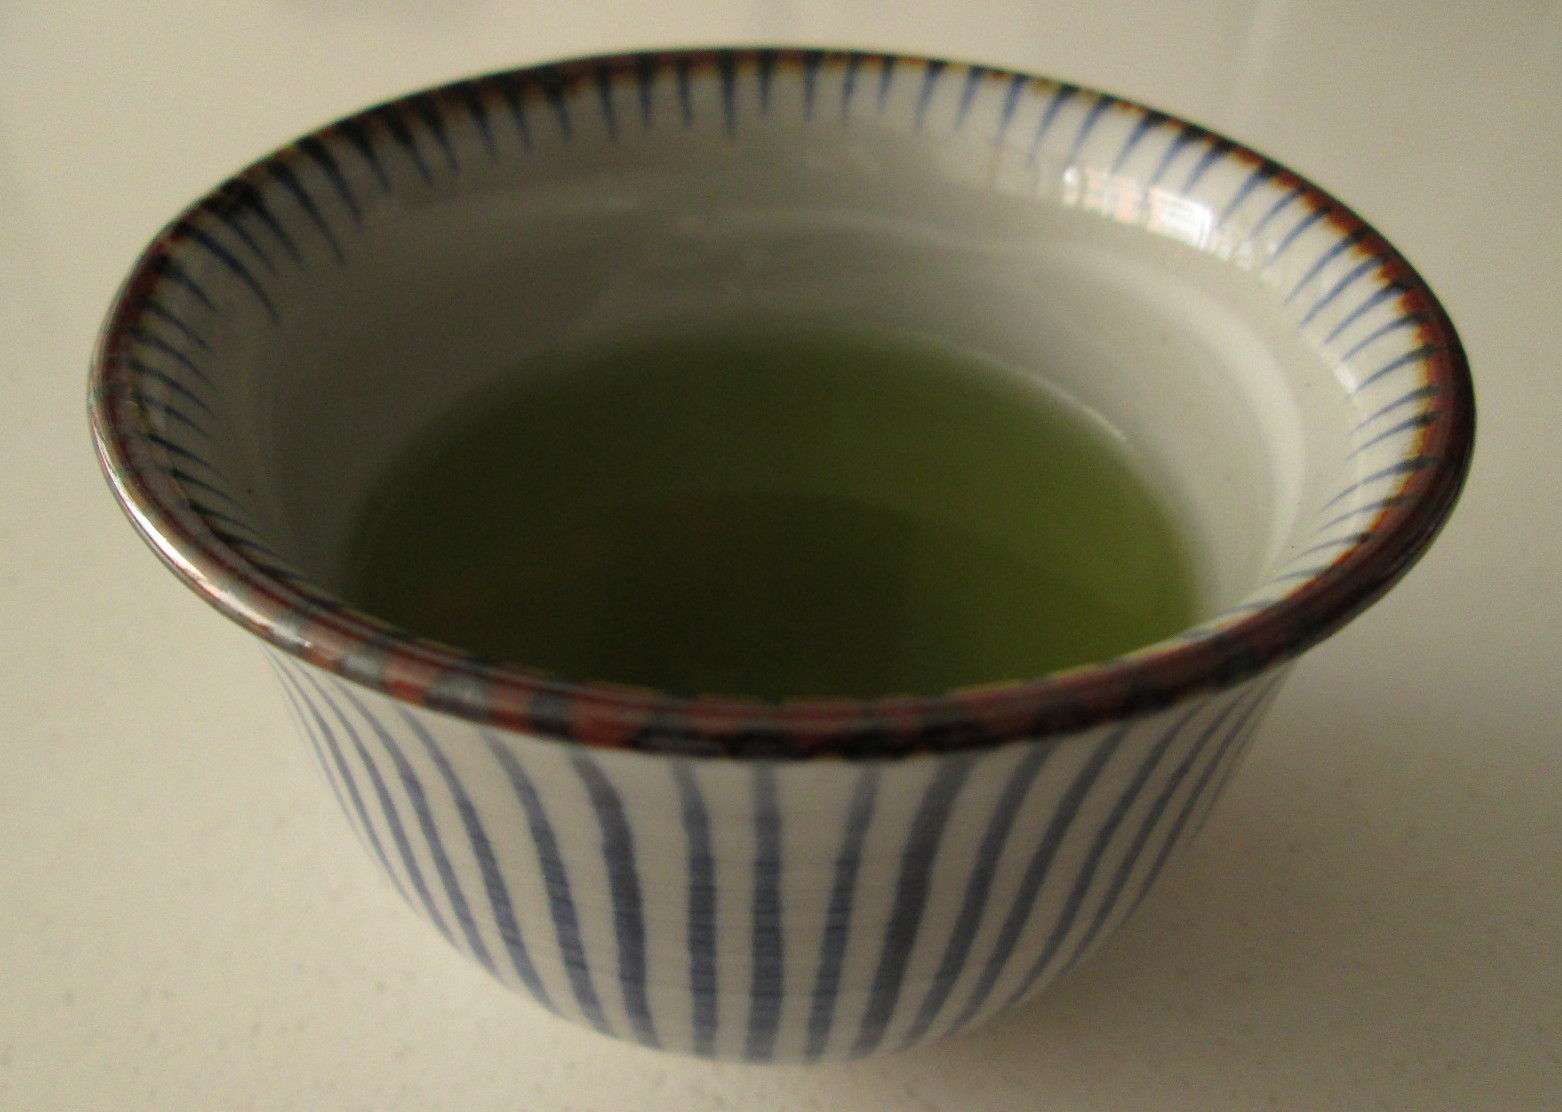 Fukamushi Sencha, taking steaming a step further: